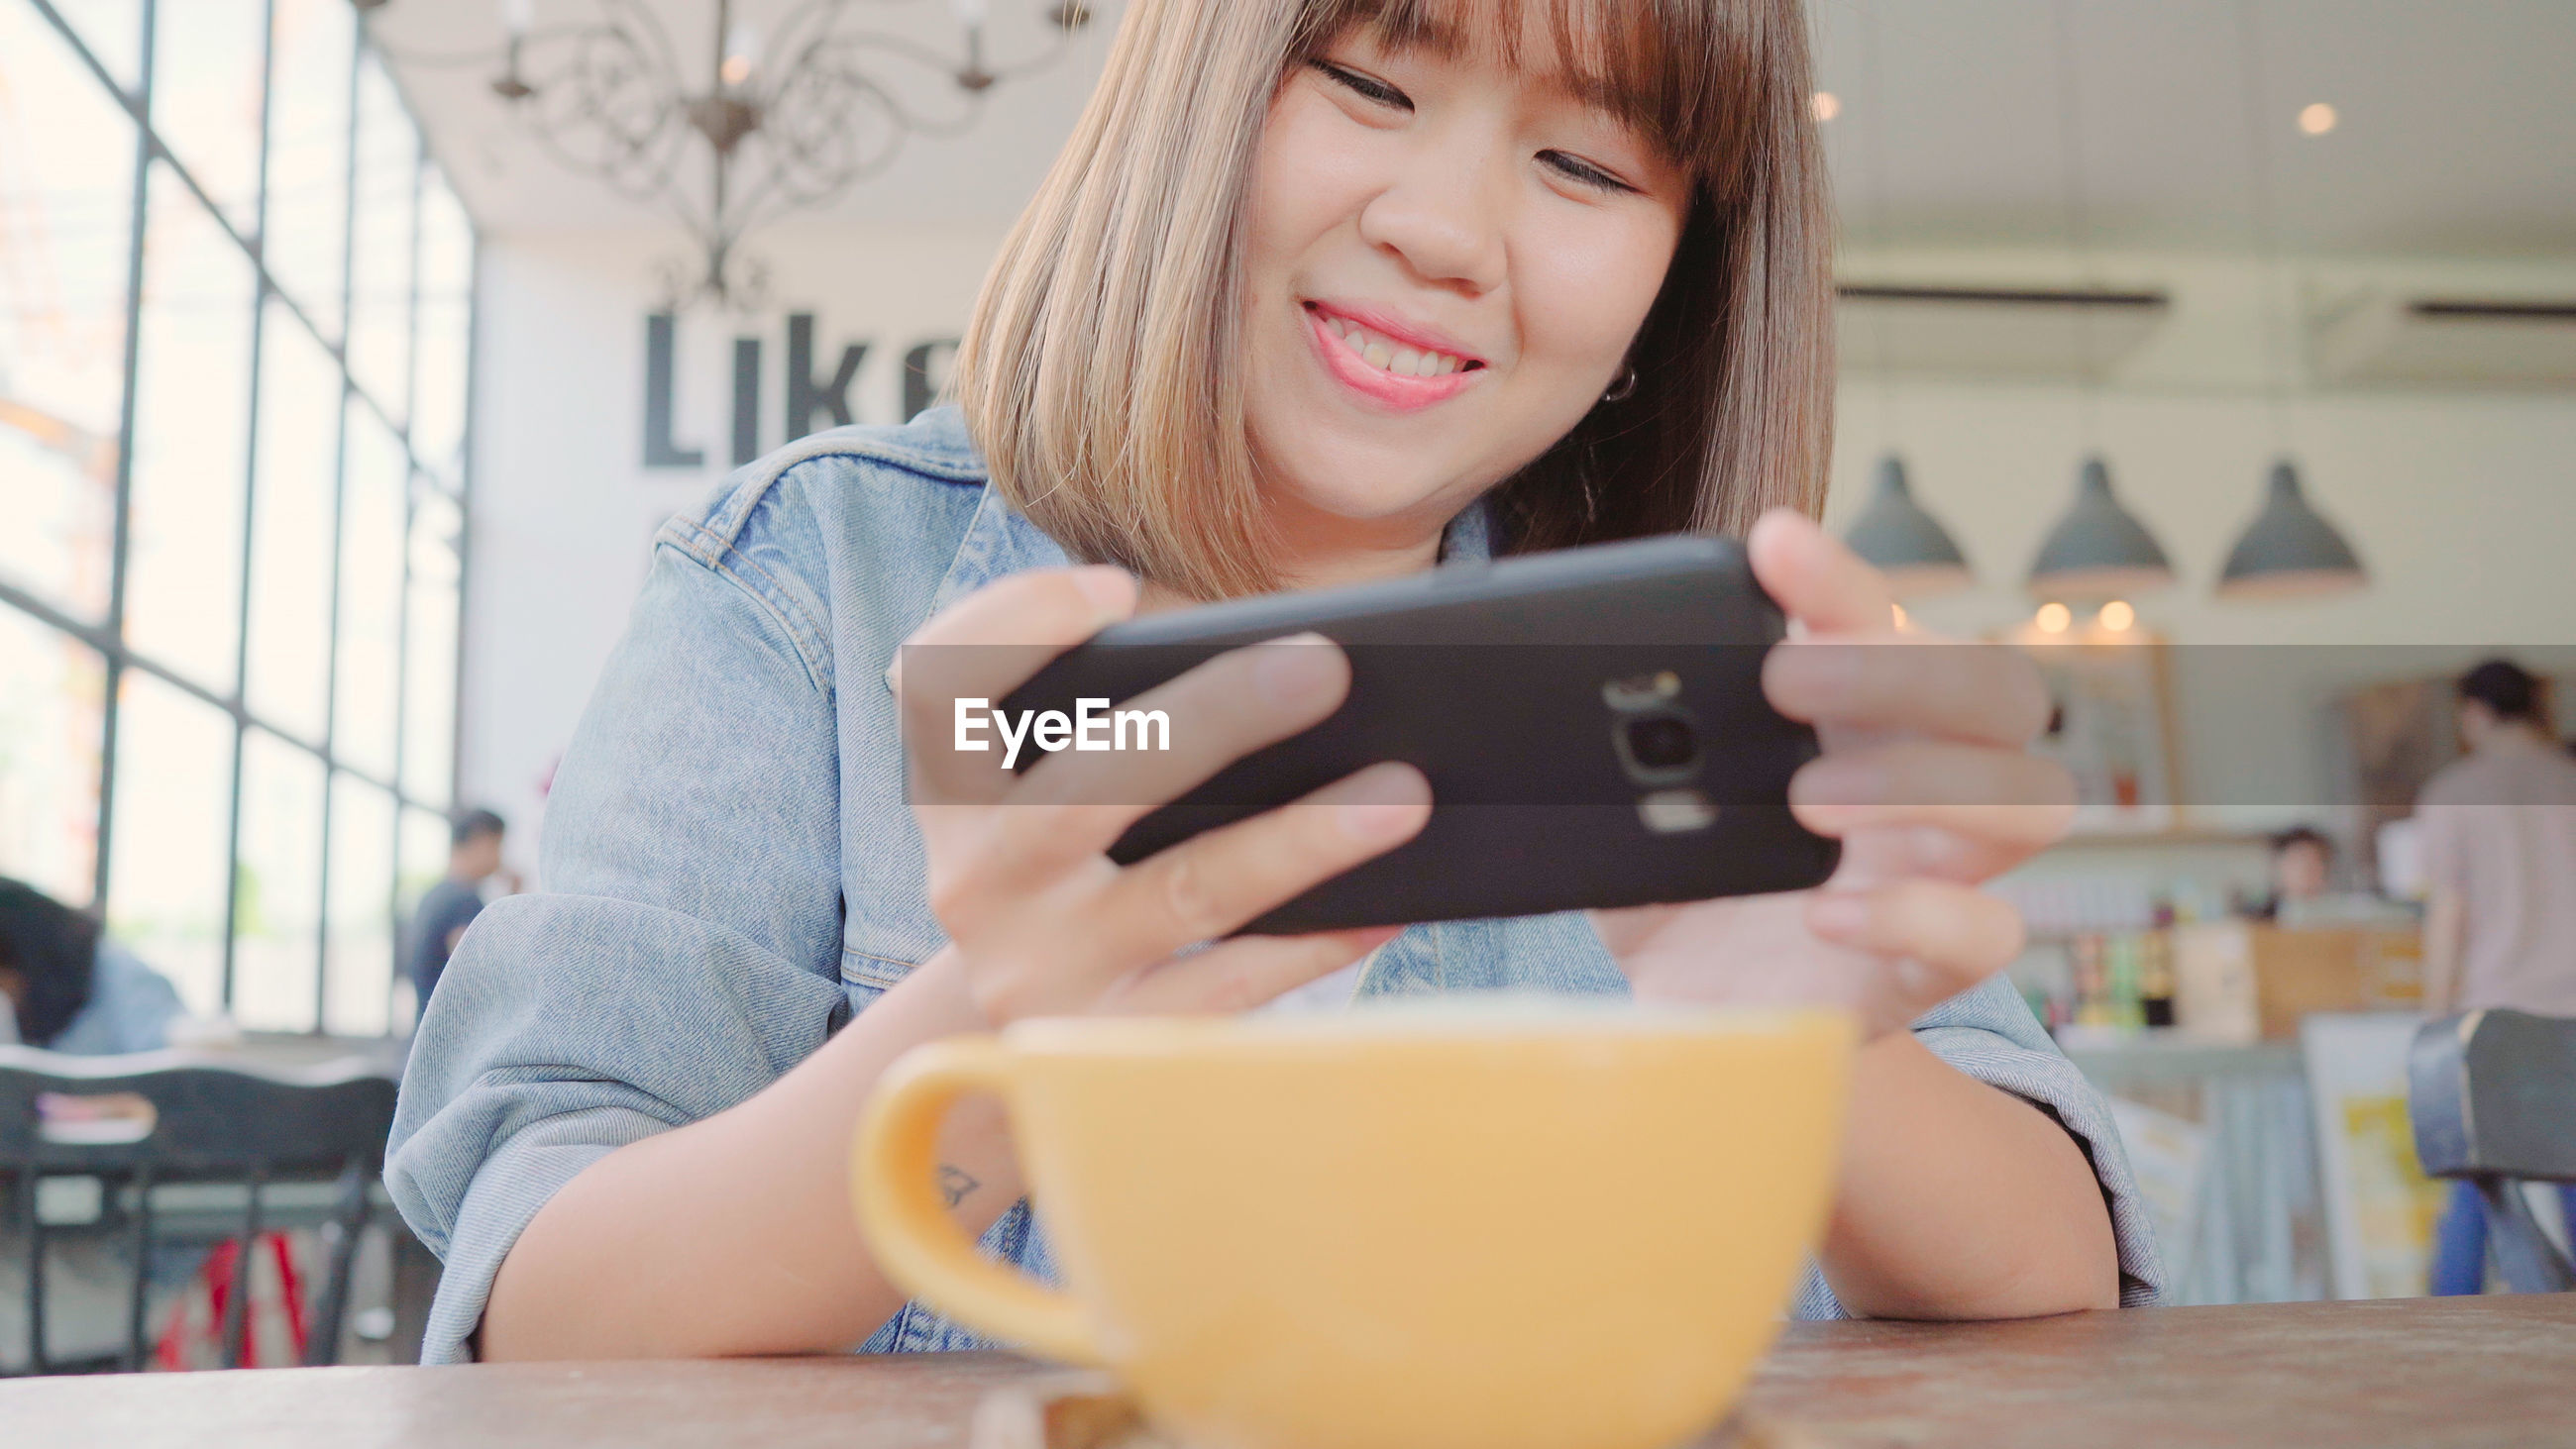 Smiling young woman photographing cup on table in cafe